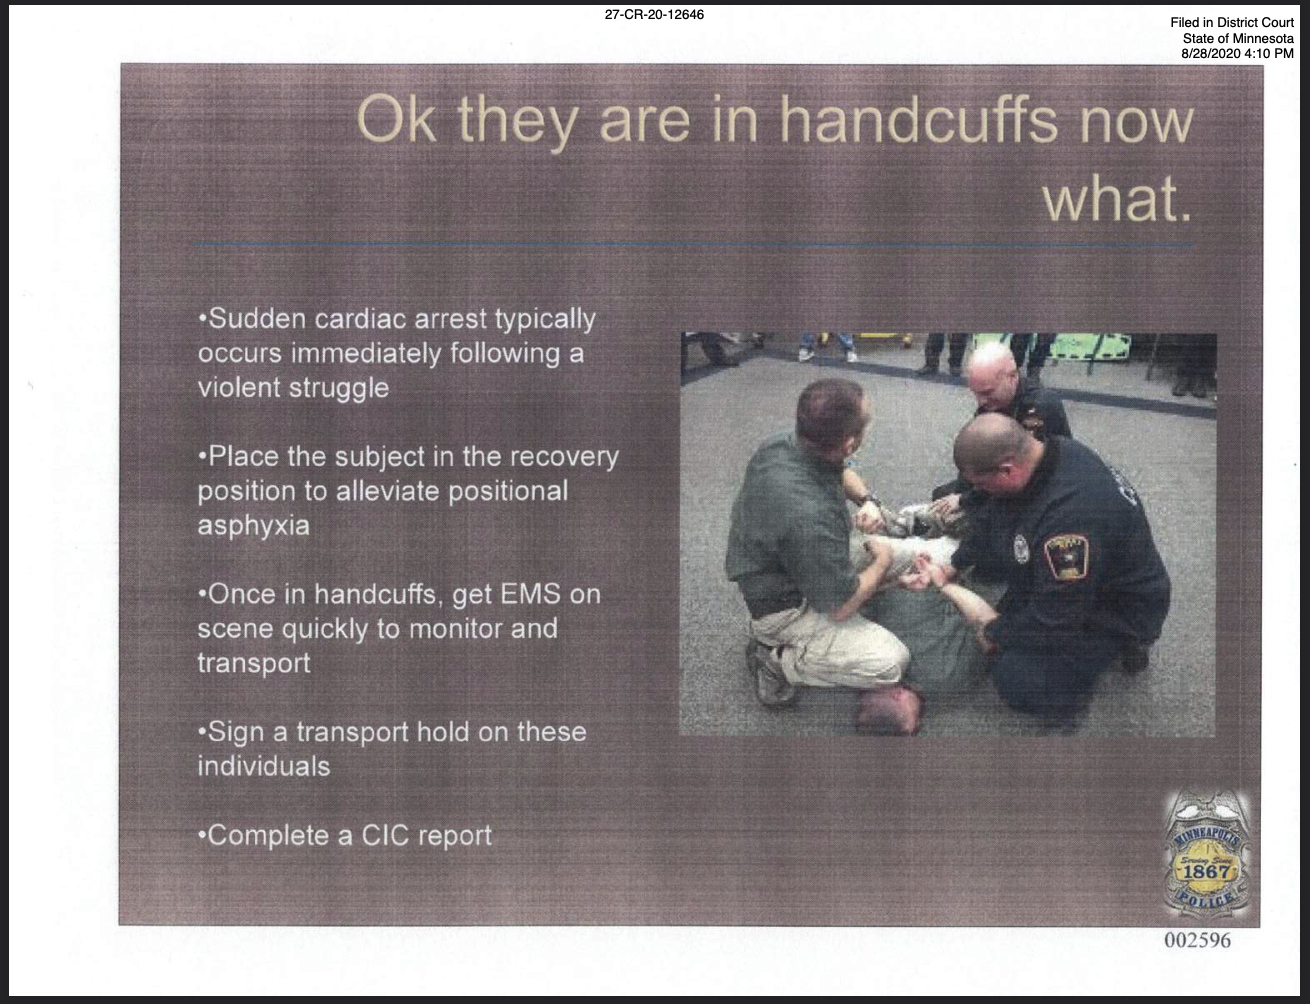 This image submitted by Derek Chauvin's defense team shows a page from Minneapolis Police Department training materials. Former Minneapolis police Officer Derek Chauvin is on trial at the Hennepin County Courthouse in Minneapolis for the May 25, 2020 death of George Floyd. (Minneapolis Police Department via AP)